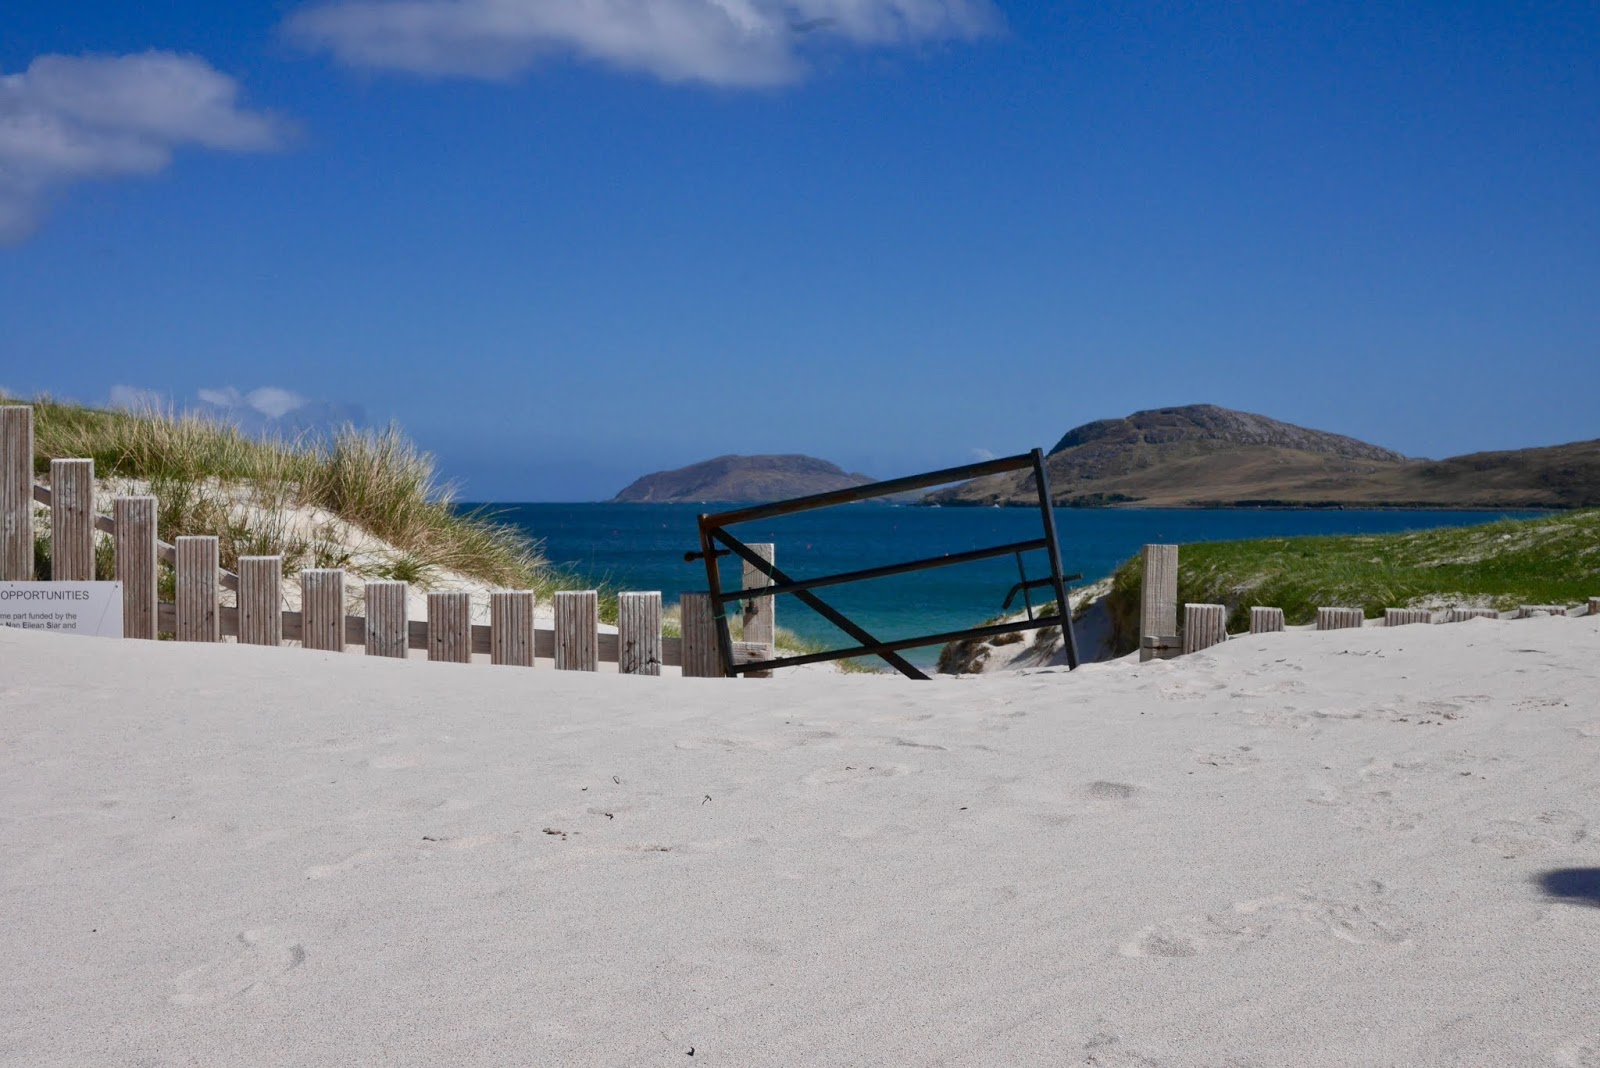 Traigh a Bhaigh beach in Vatersay by Cal McTravel of www.CalMcTraves.com